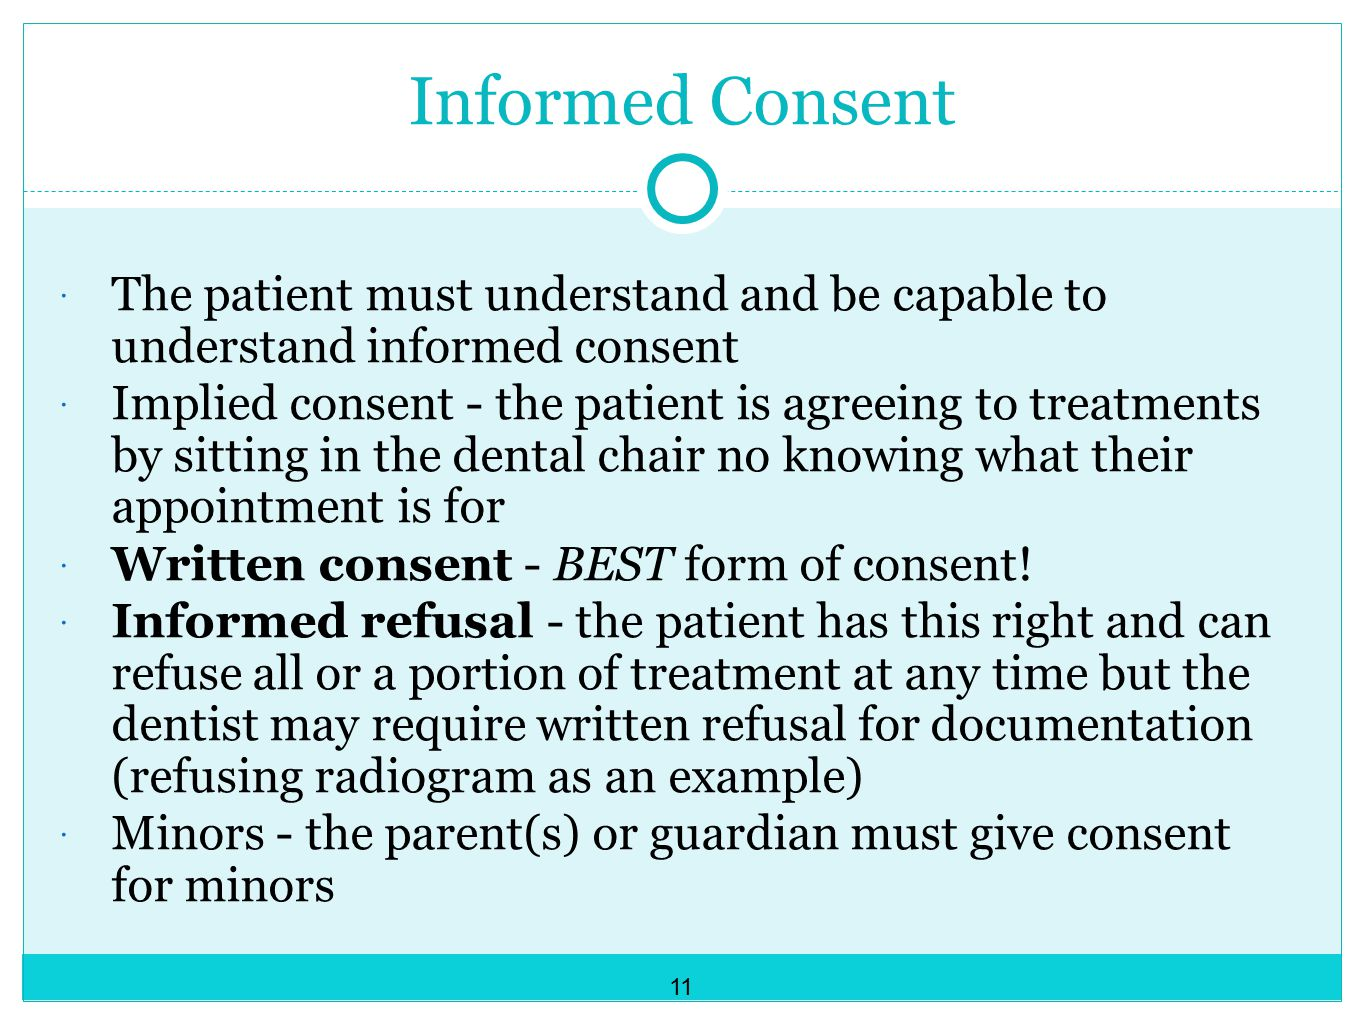 Informed Consent  The patient must understand and be capable to understand informed consent  Implied consent - the patient is agreeing to treatments by sitting in the dental chair no knowing what their appointment is for  Written consent - BEST form of consent.